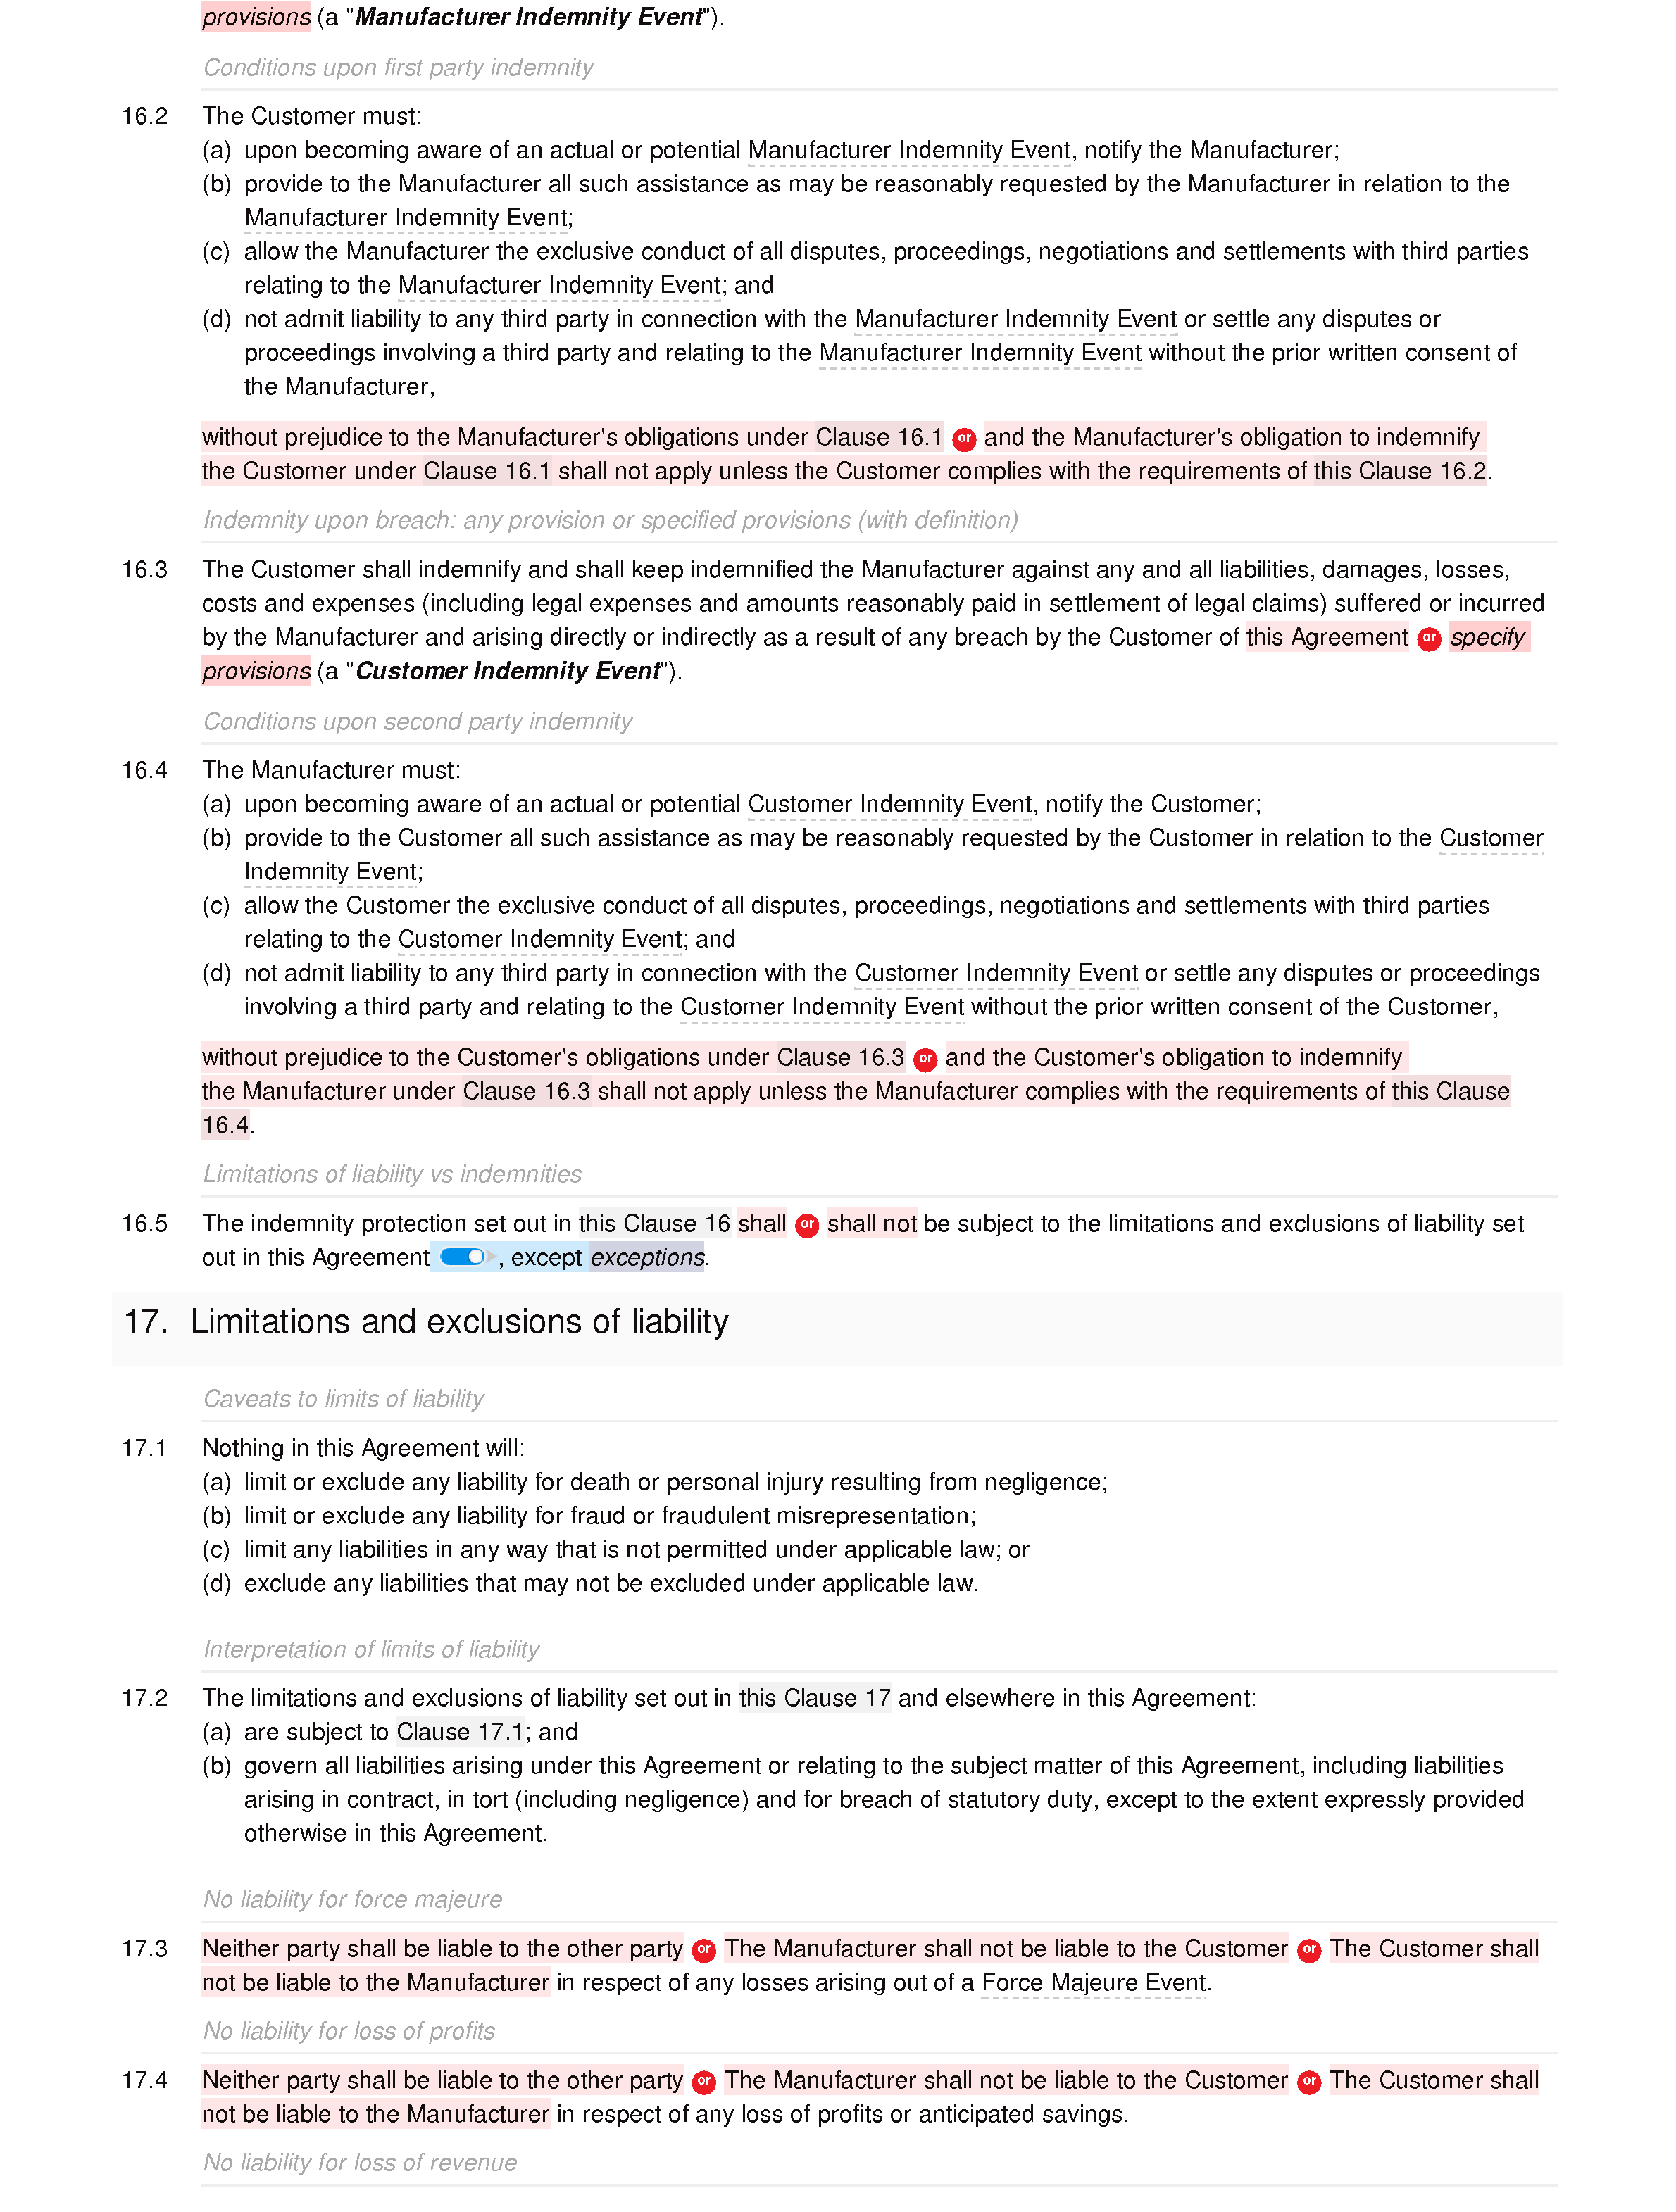 Free manufacturing agreement document editor preview